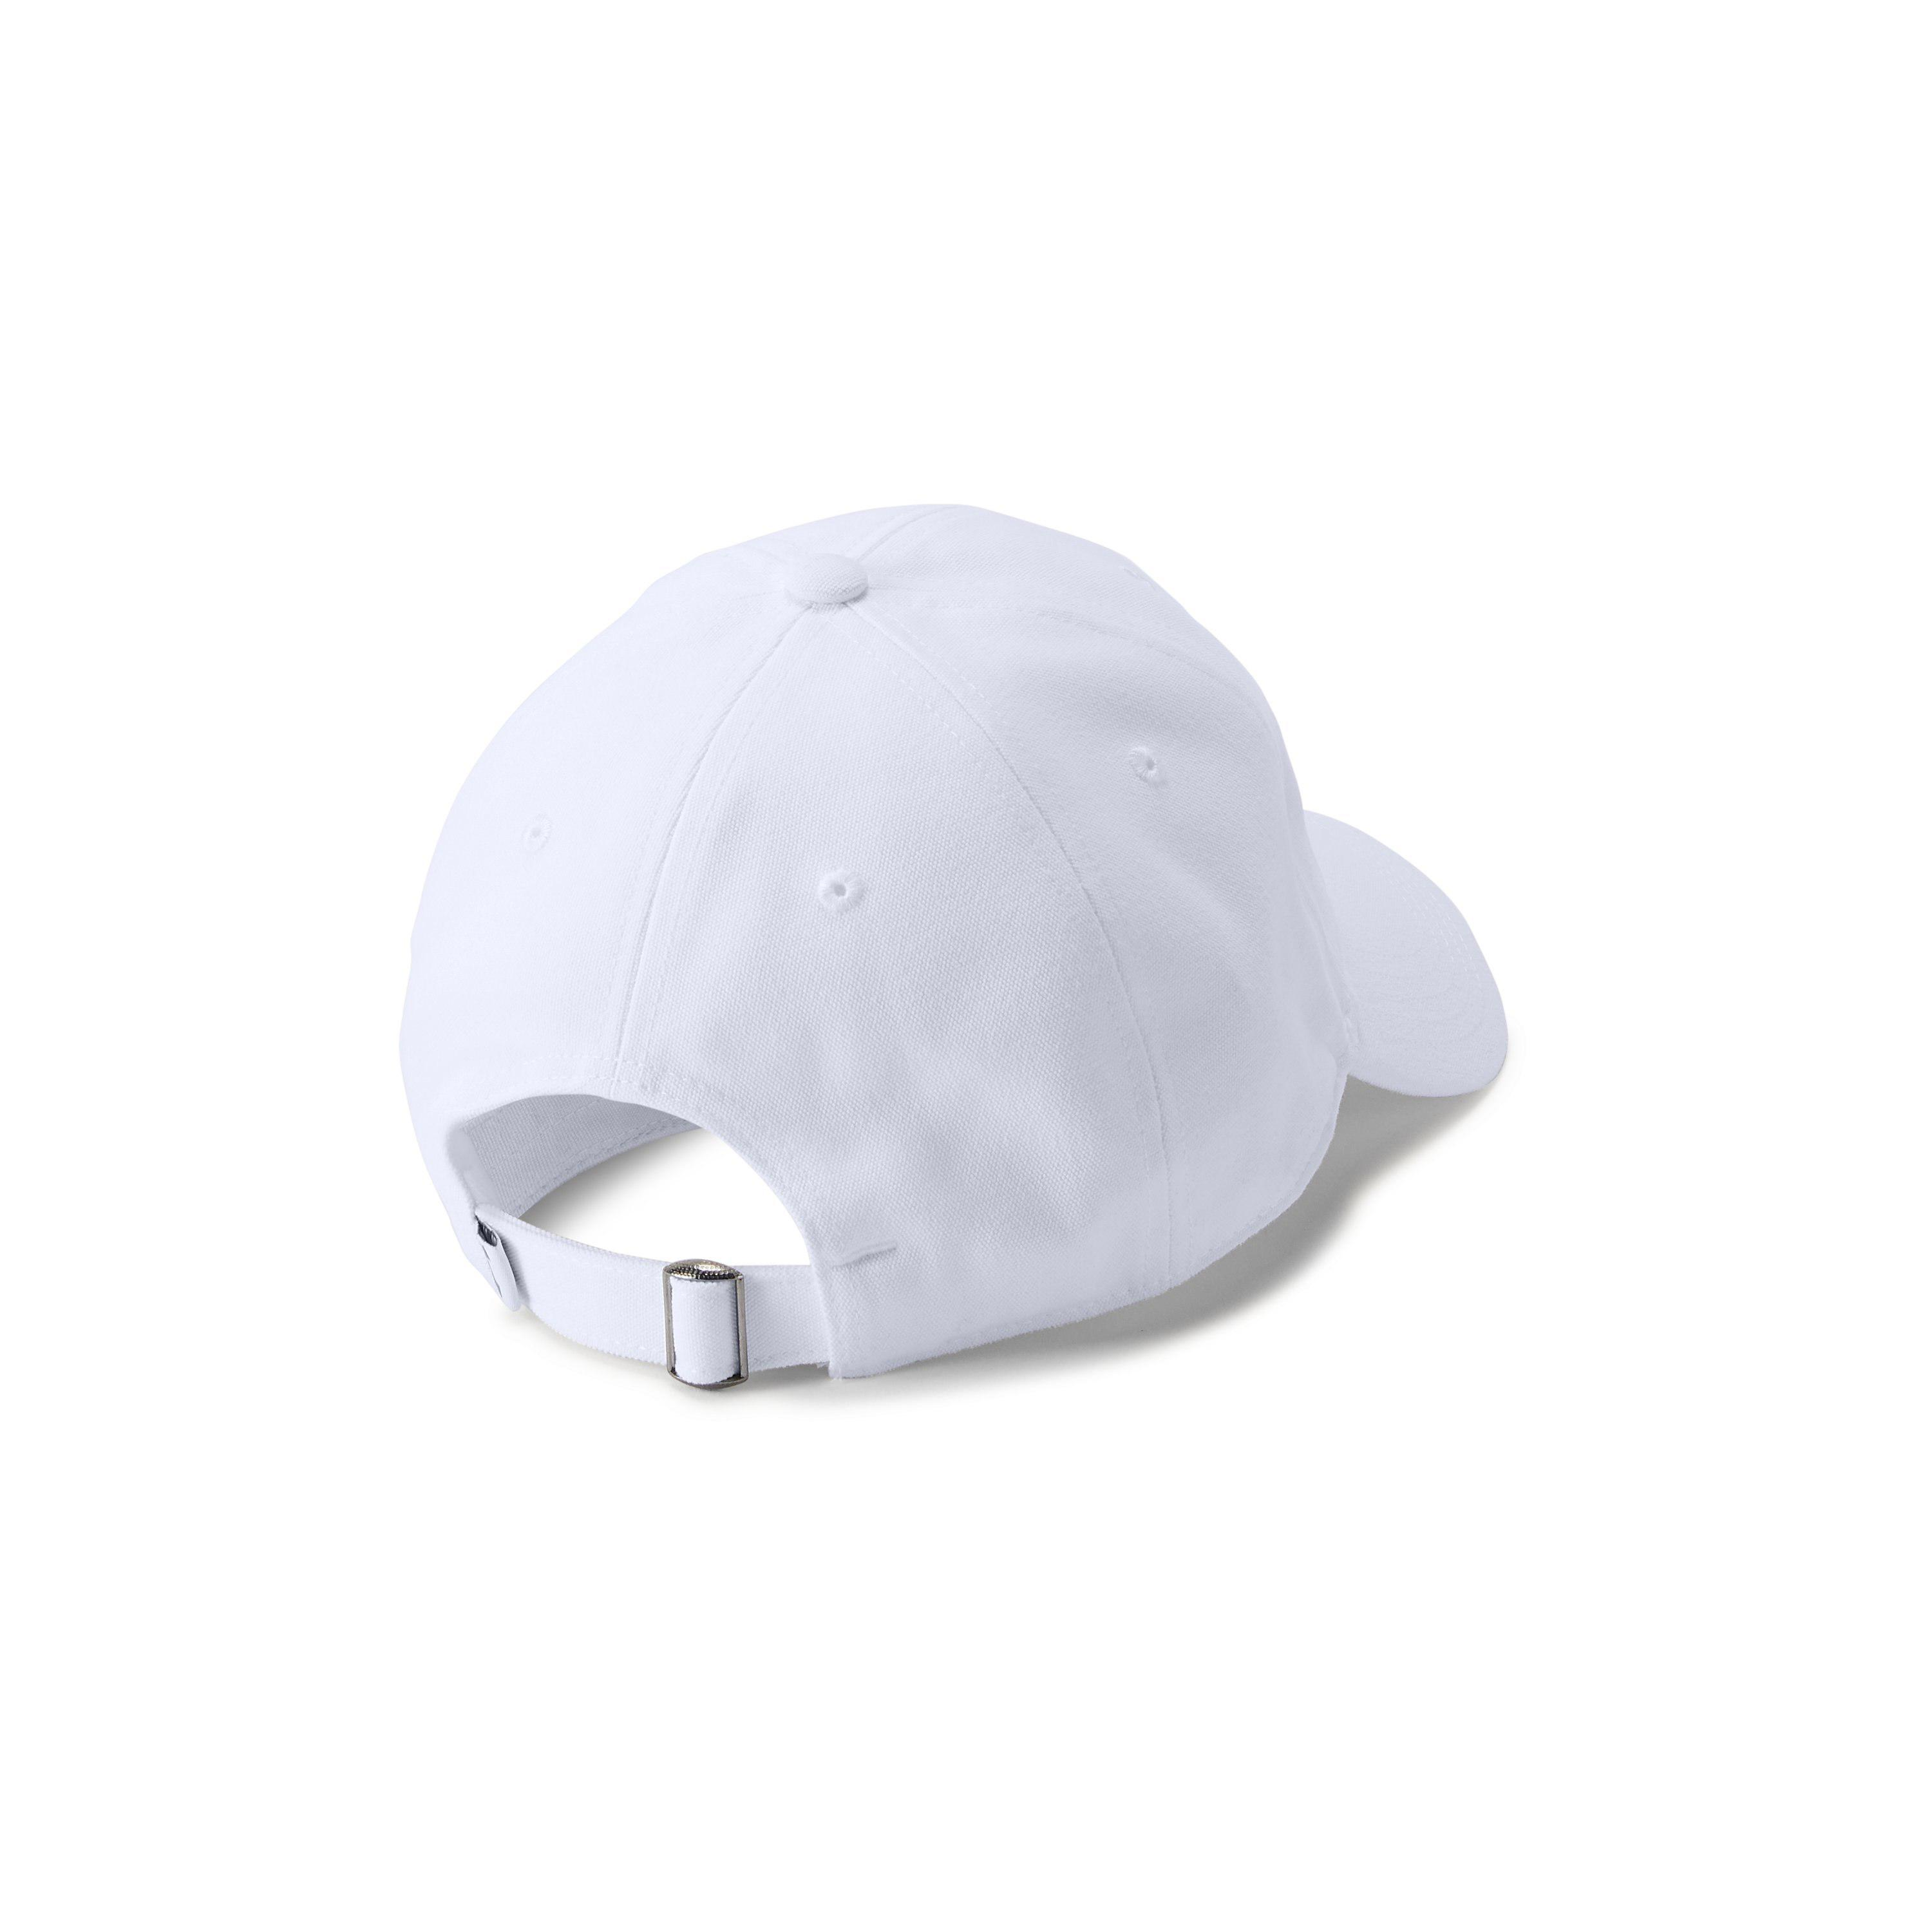 Lyst - Under Armour Men s Ua Core Canvas Cap in White for Men efaad08d0727